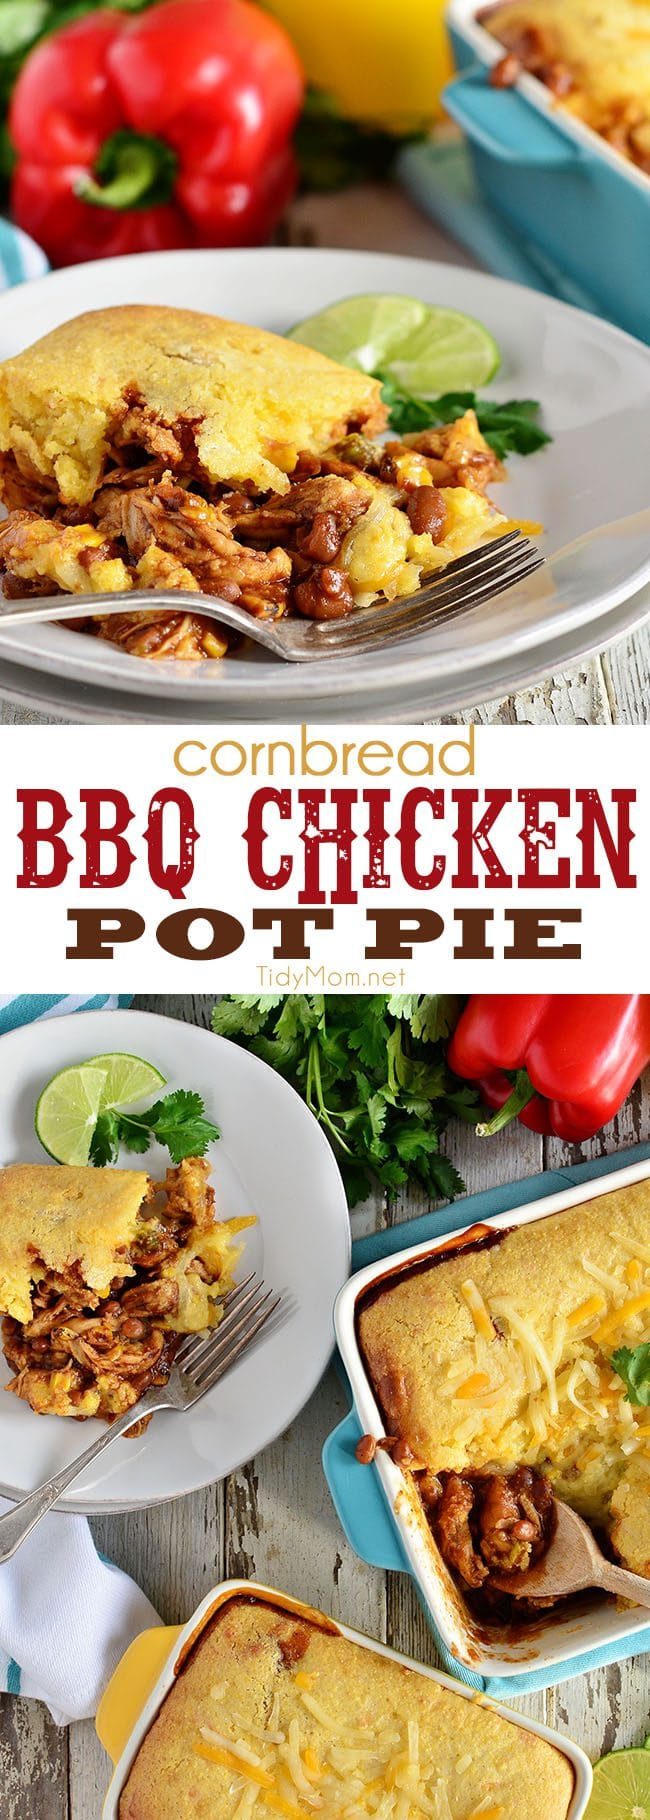 BBQ Chicken Pot Pie is comfort food at its finest! A hearty bbq chicken and baked bean filling is topped with cornbread for a taste of summer in the winter!! The flavors blend together so nicely it warms you up from the inside out. Get this family friendly recipe at TidyMom.net